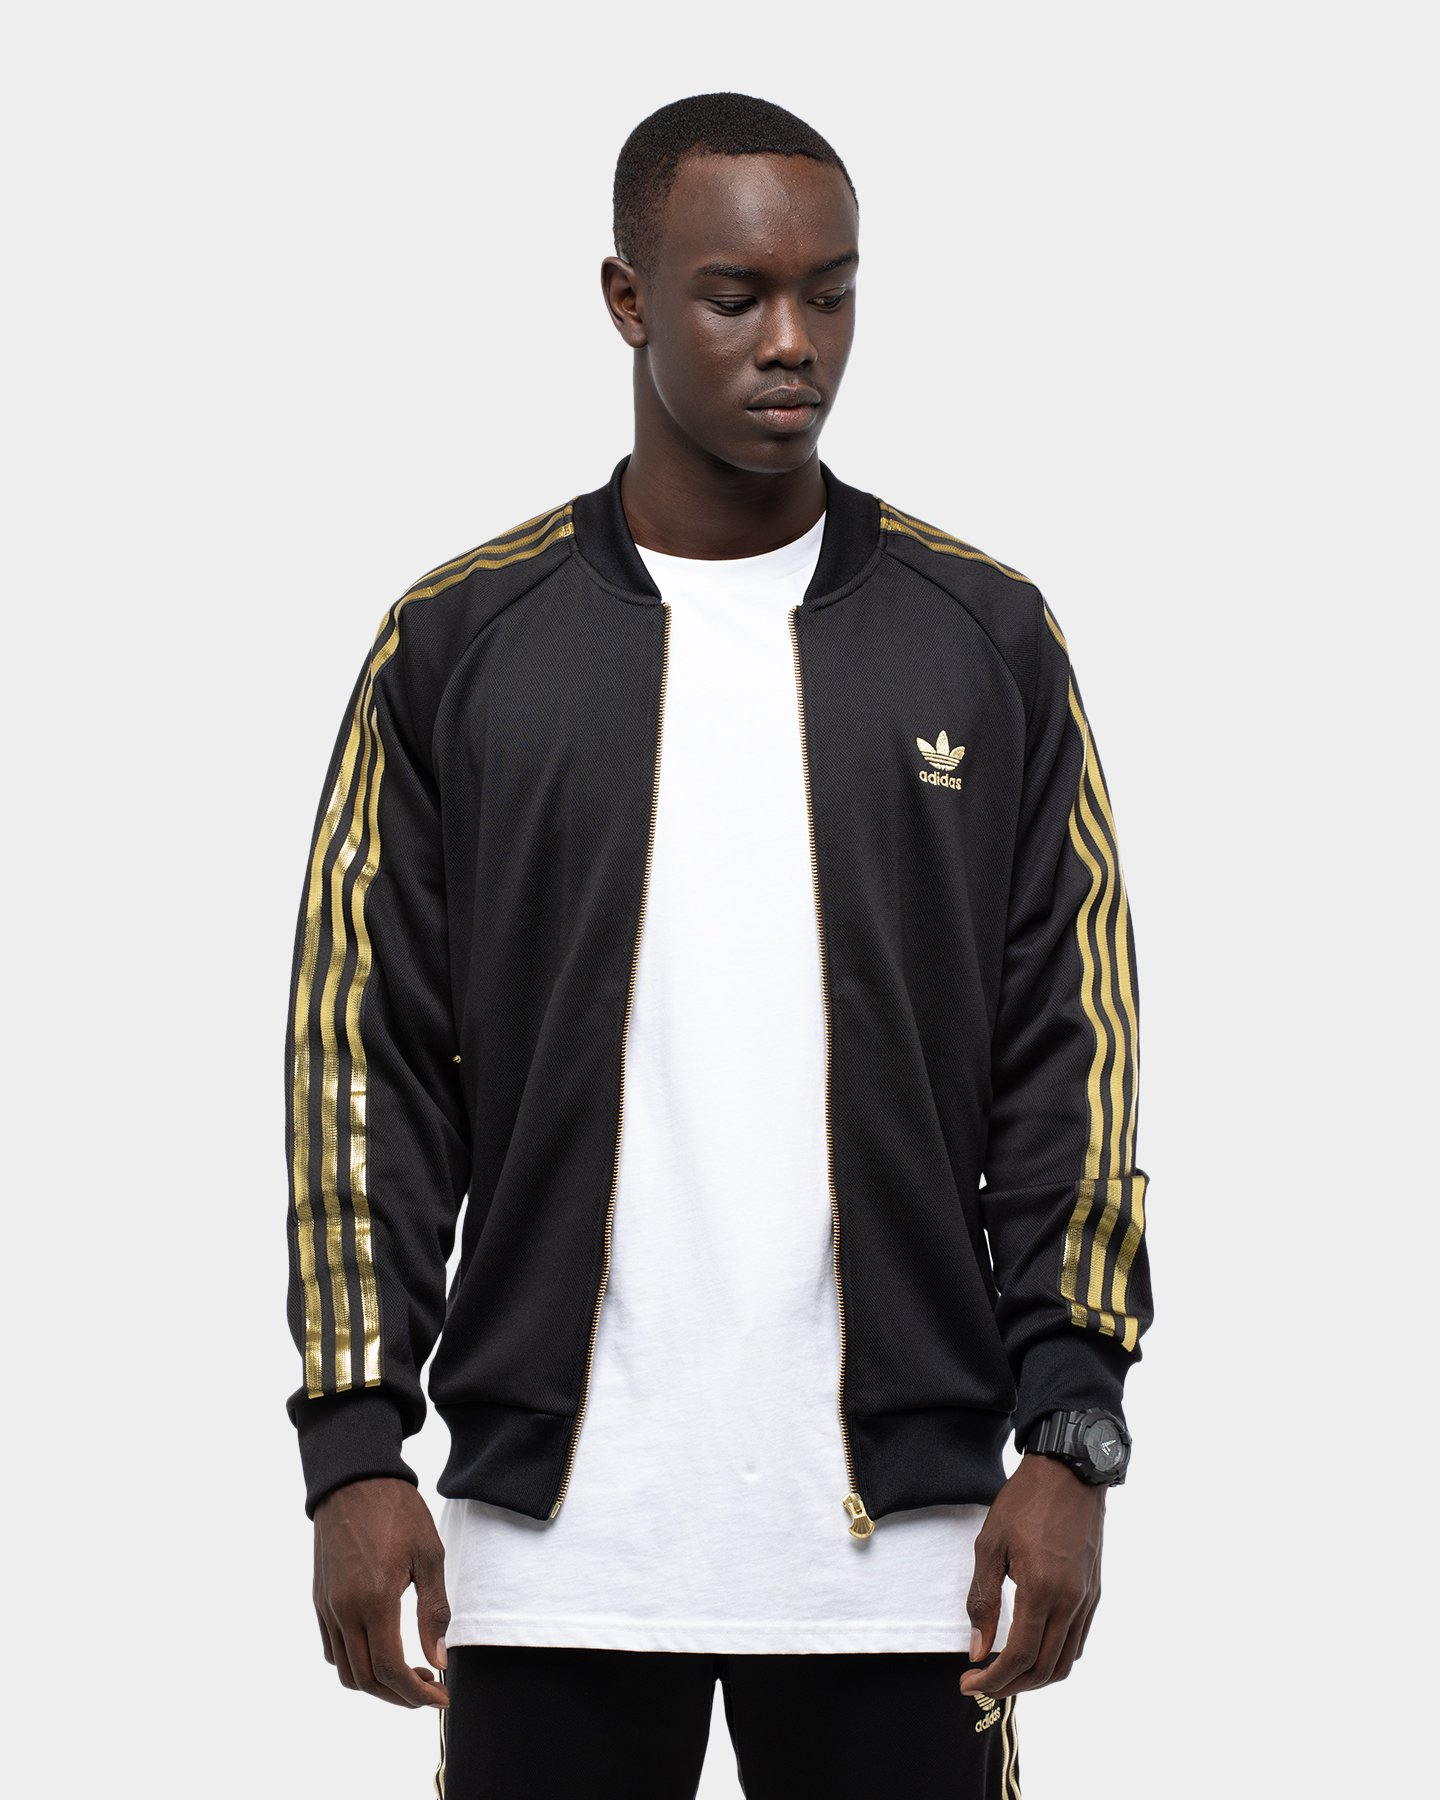 Adidas SST Track Jacket | We're Going to Live In These